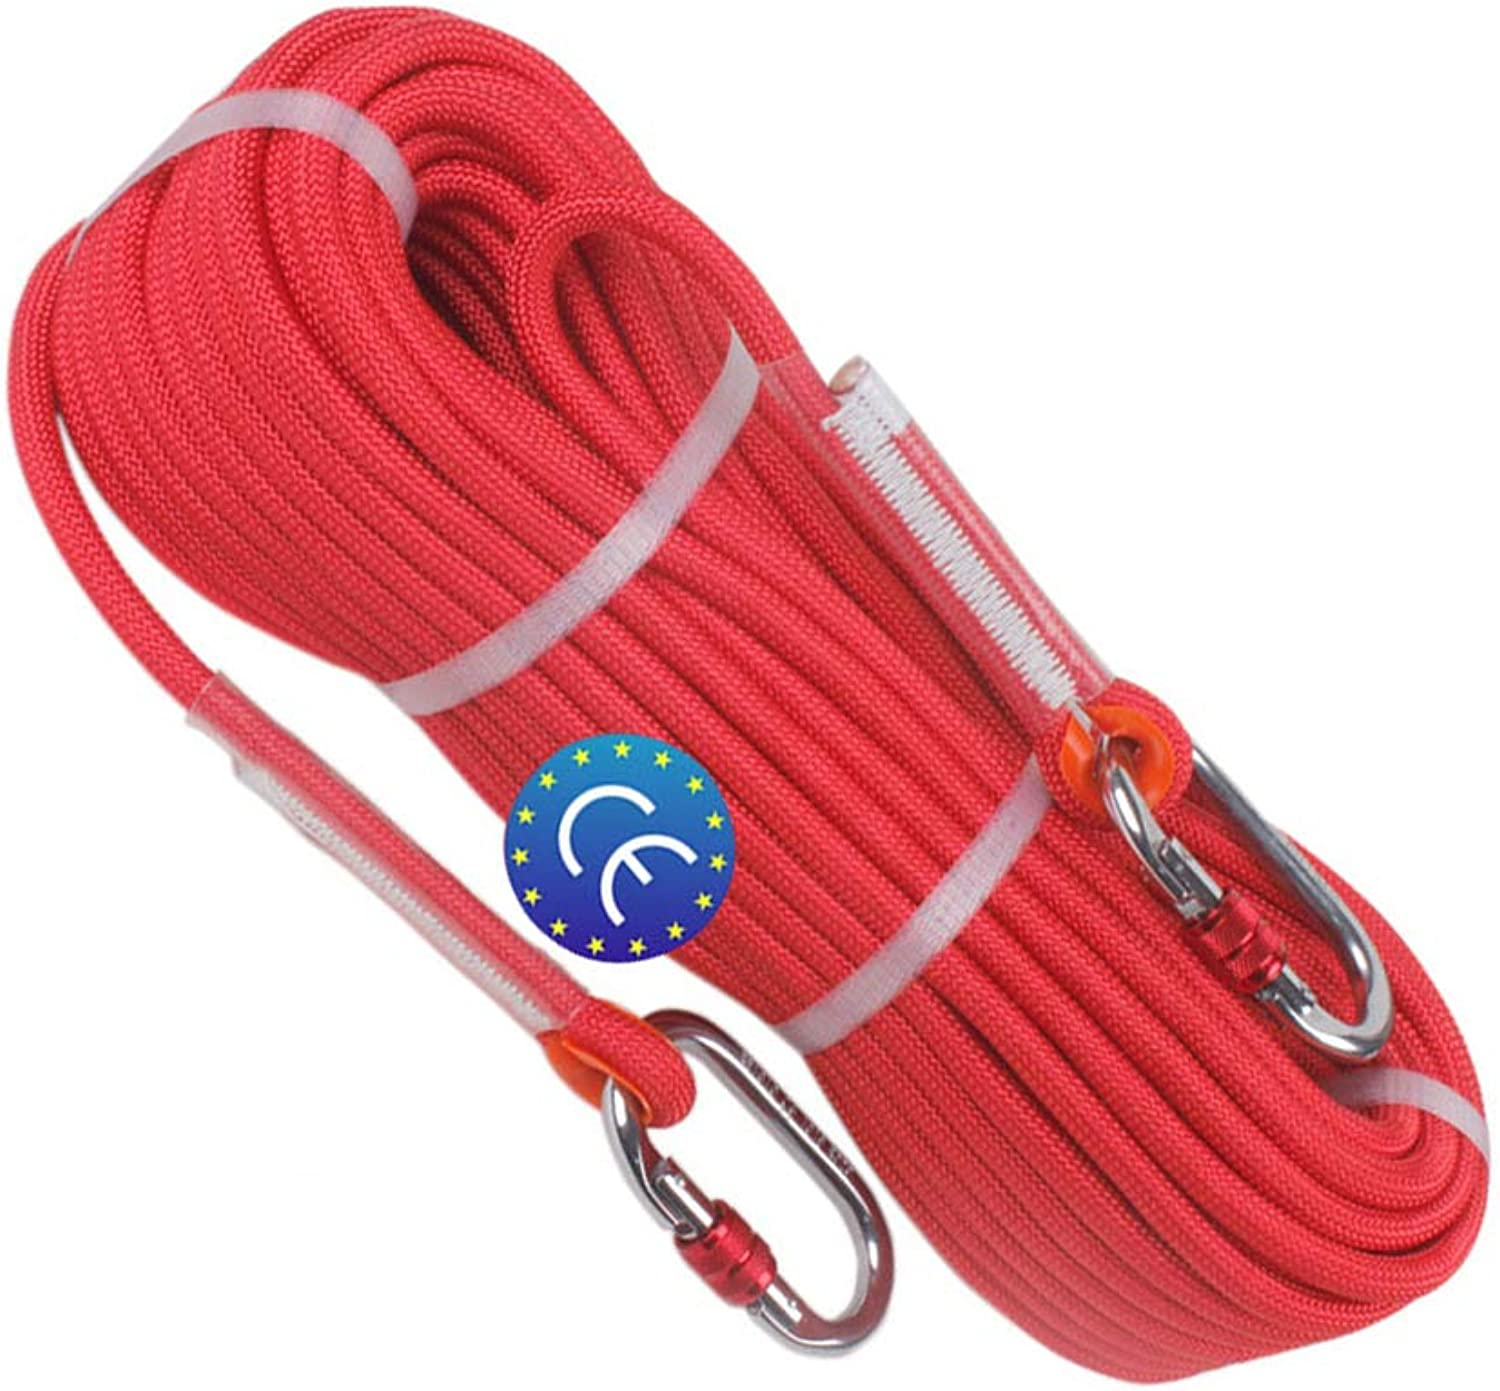 YYBT Felskletter-Rope, Outdoor Professional Climbing Cord Professional Cord Diameter 10,5mm Mutil-use Home Rope Escape Static Indoor Rope 10m 20m 30m 40 m 50m B07NQCZZTL  Räumungsverkauf